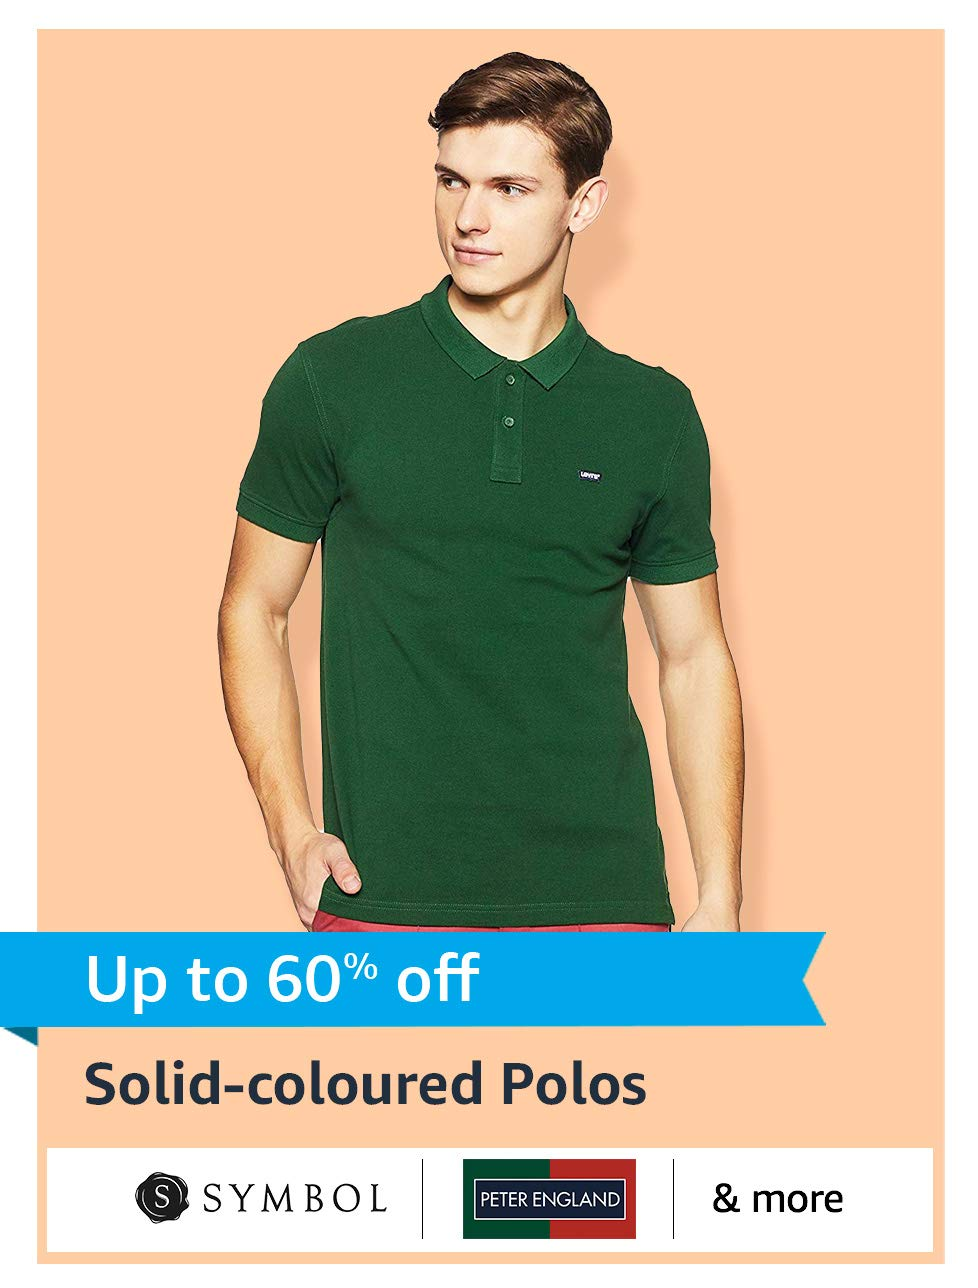 Solid-coloured Polos